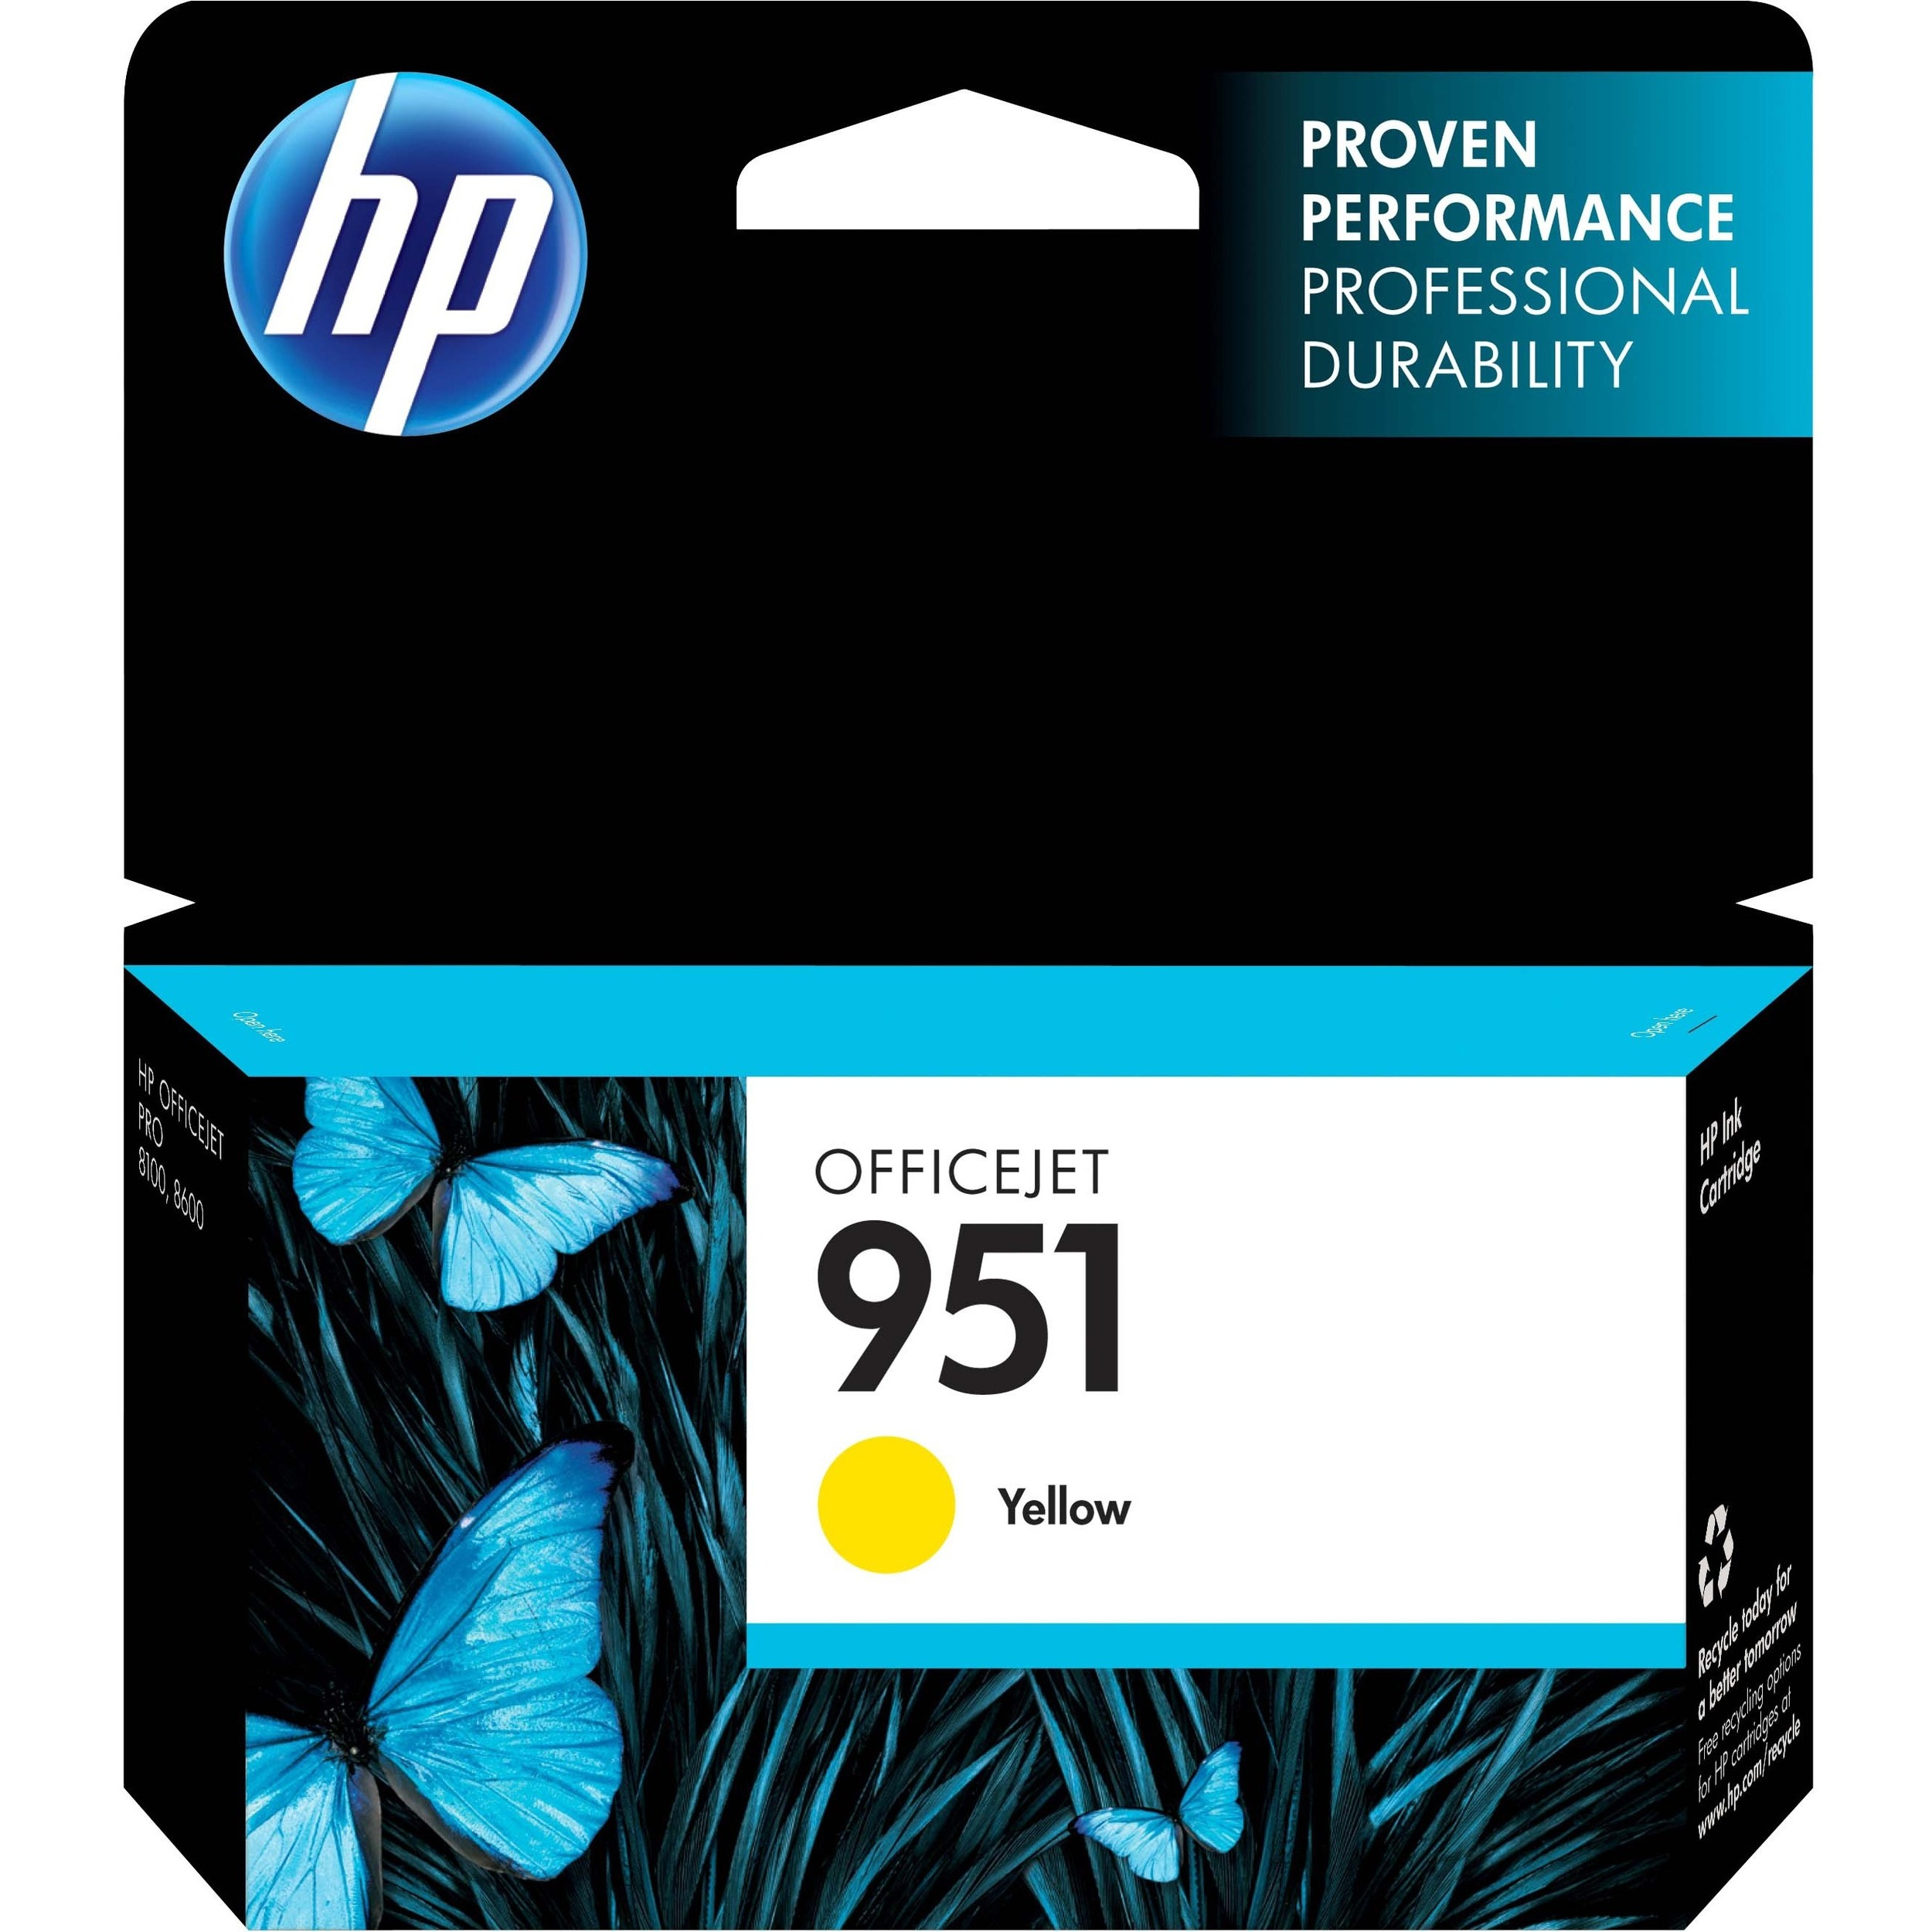 HP 951 Yellow Ink Cartridge - CN052AE#BGY